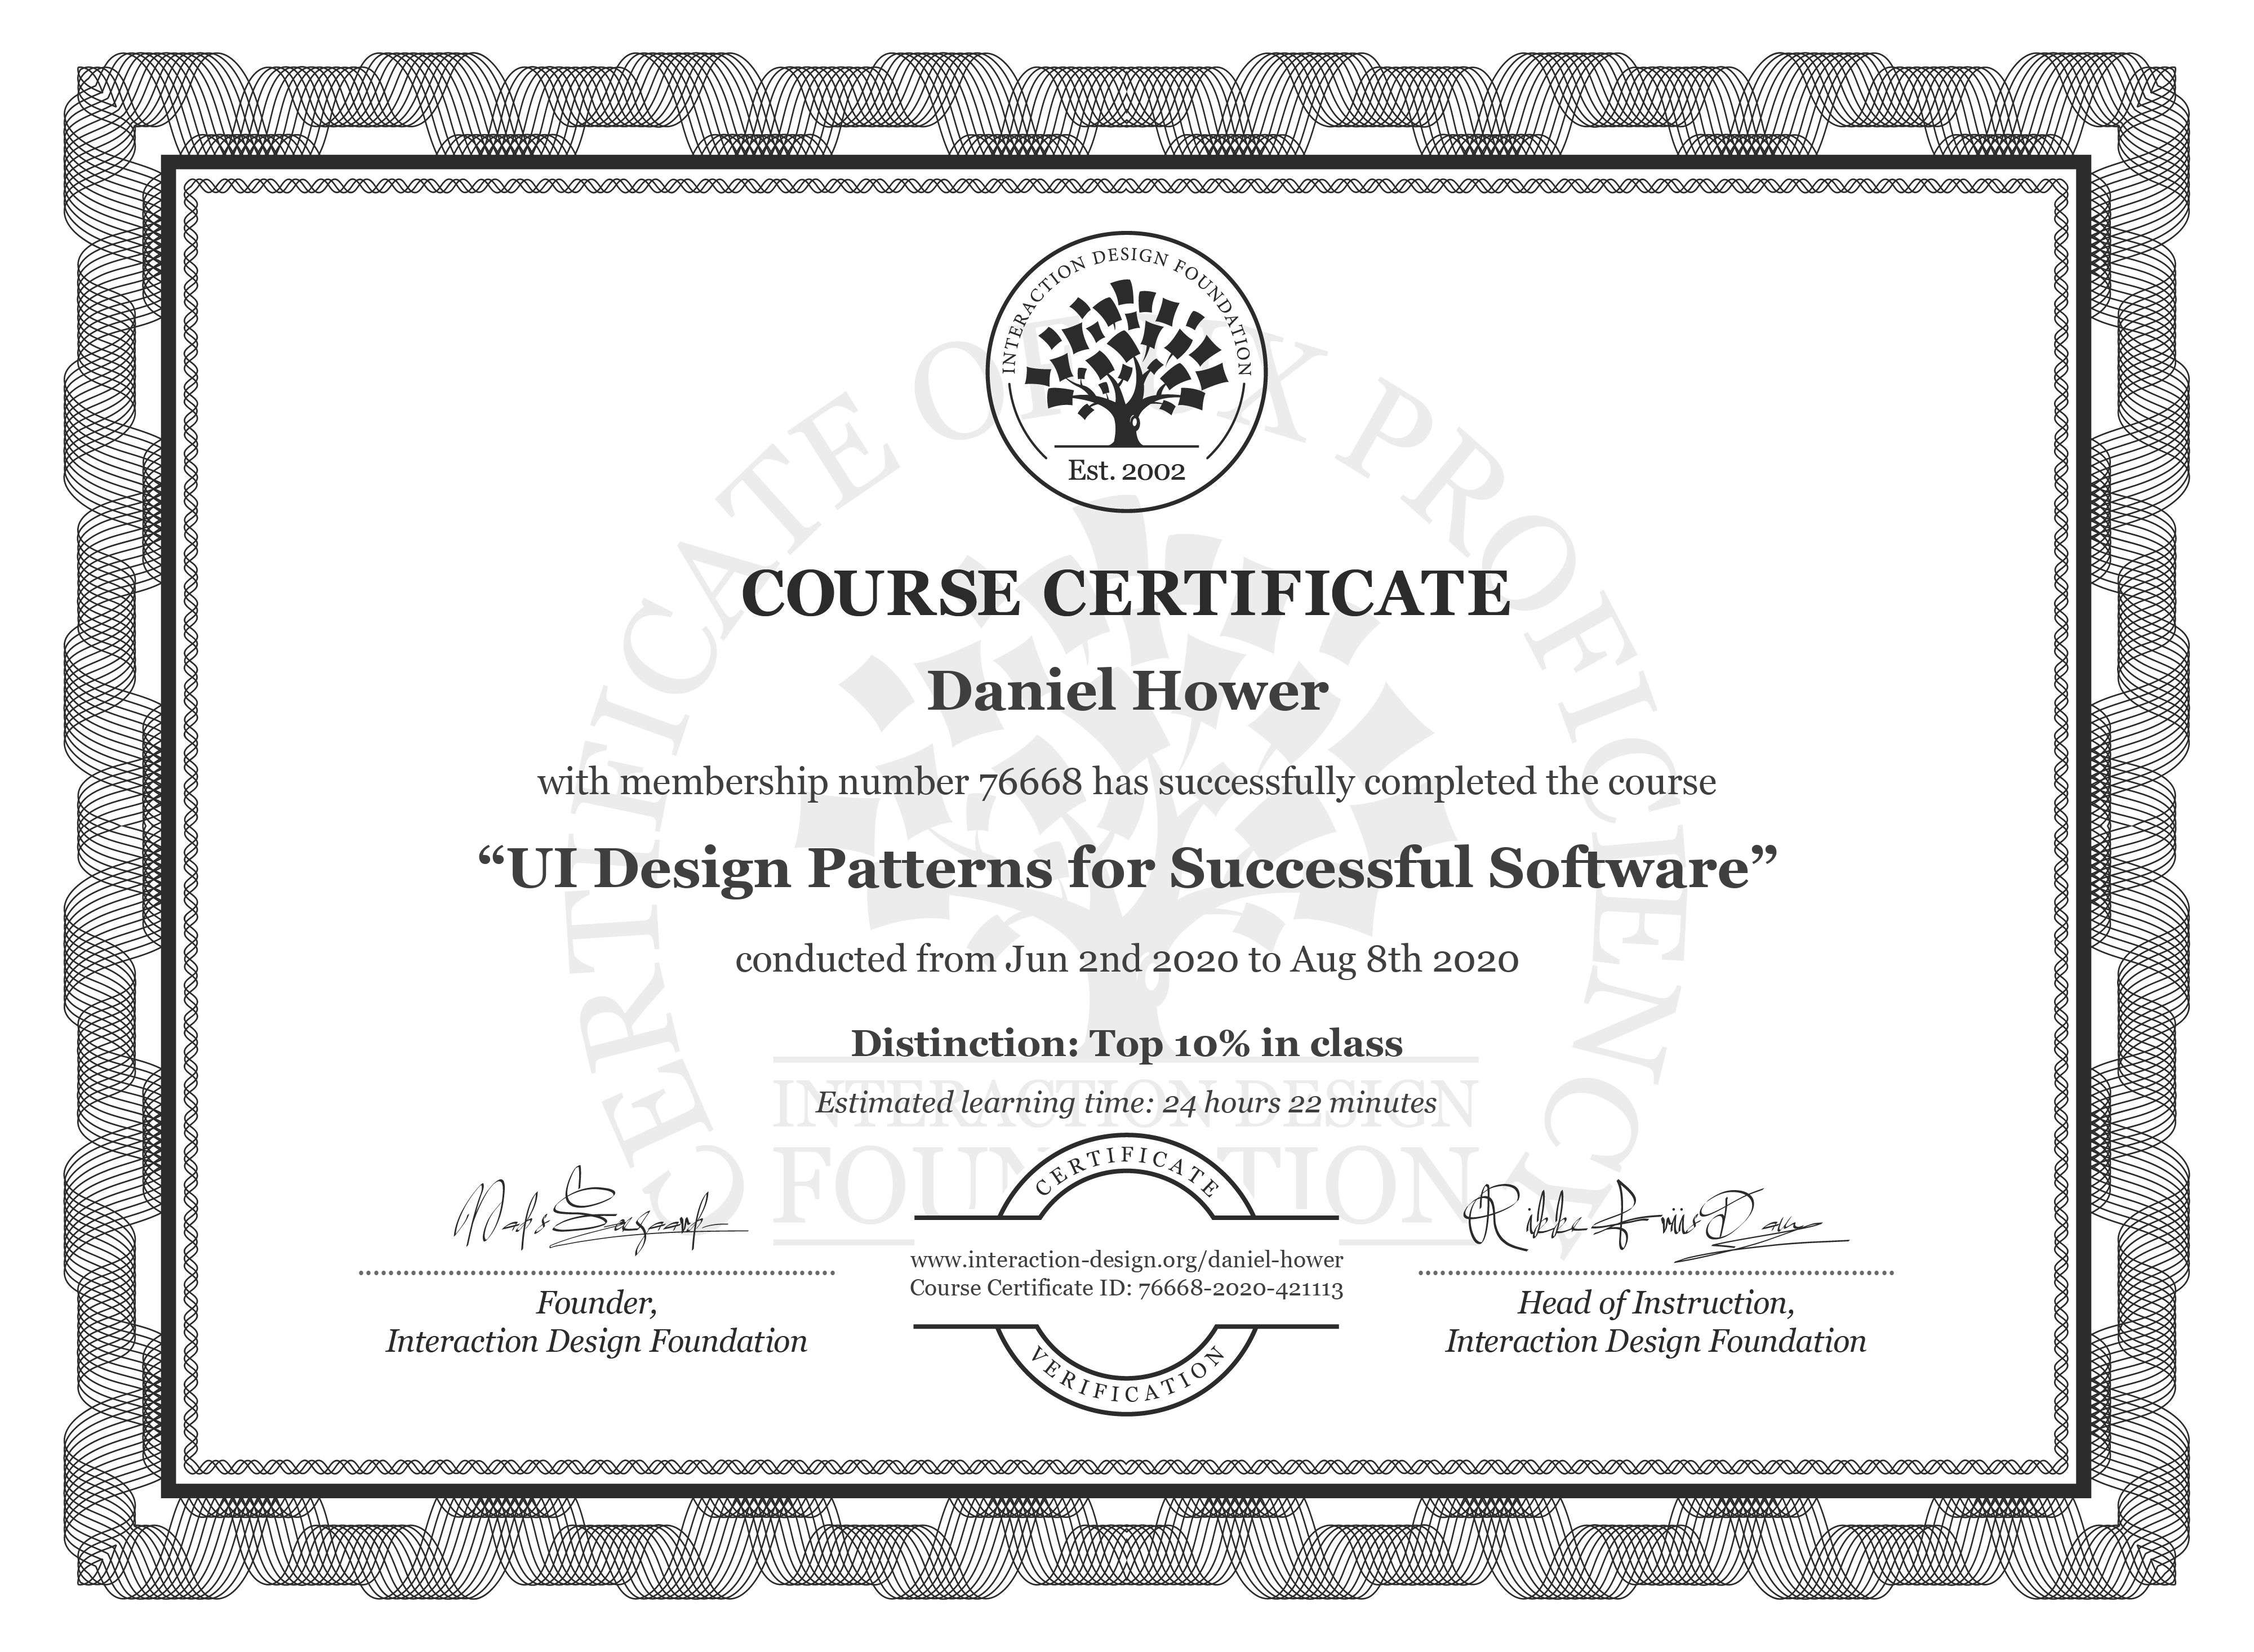 Daniel Hower's Course Certificate: UI Design Patterns for Successful Software